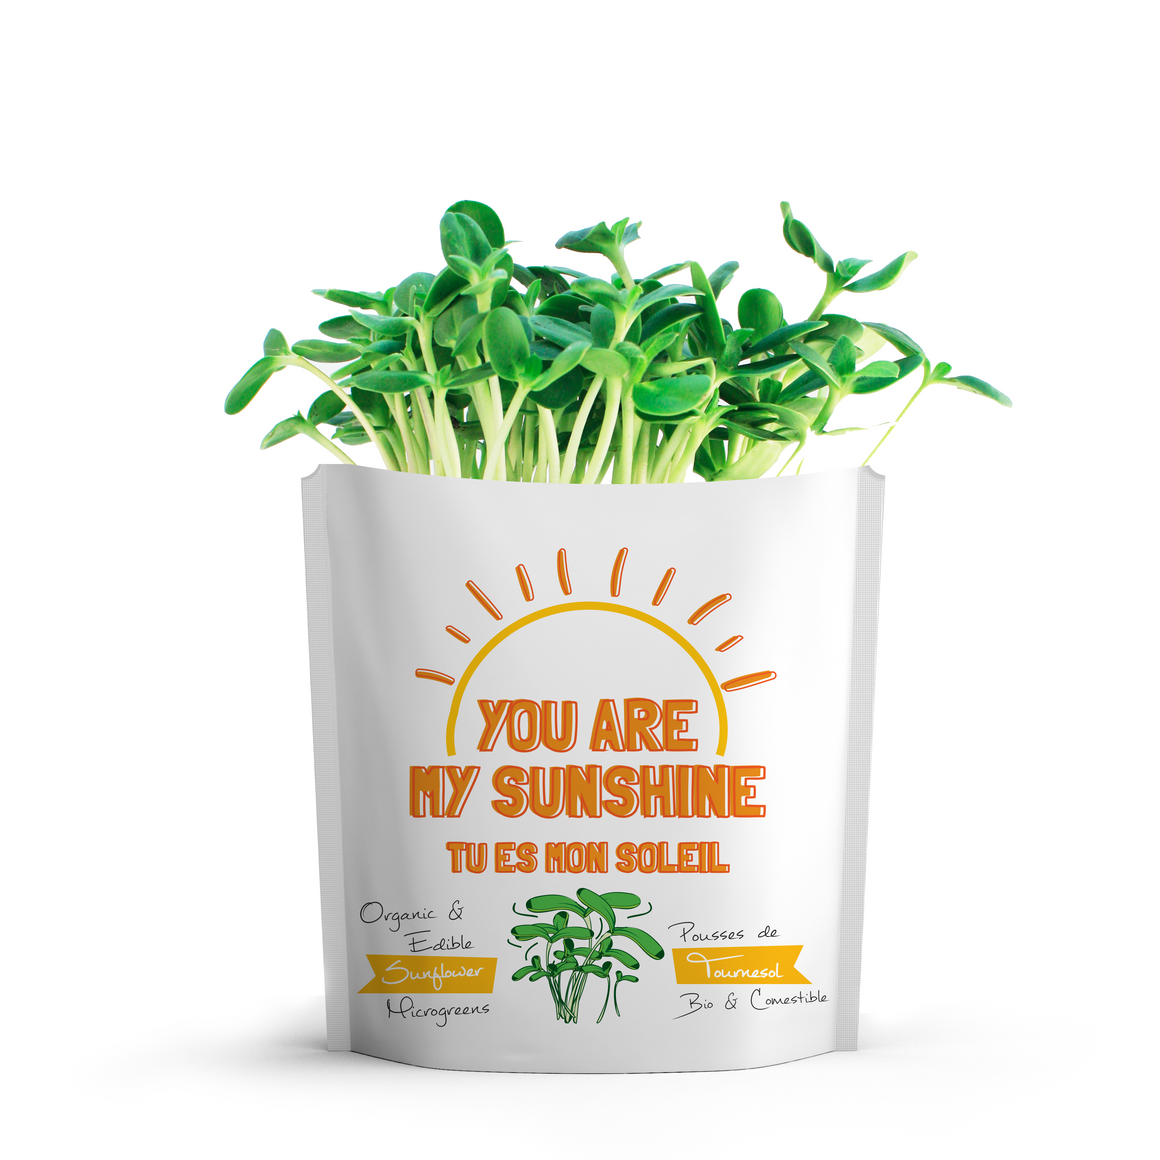 Microgreens Collection | You Are My Sunshine | Sunflower Microgreens - Gift-a-Green